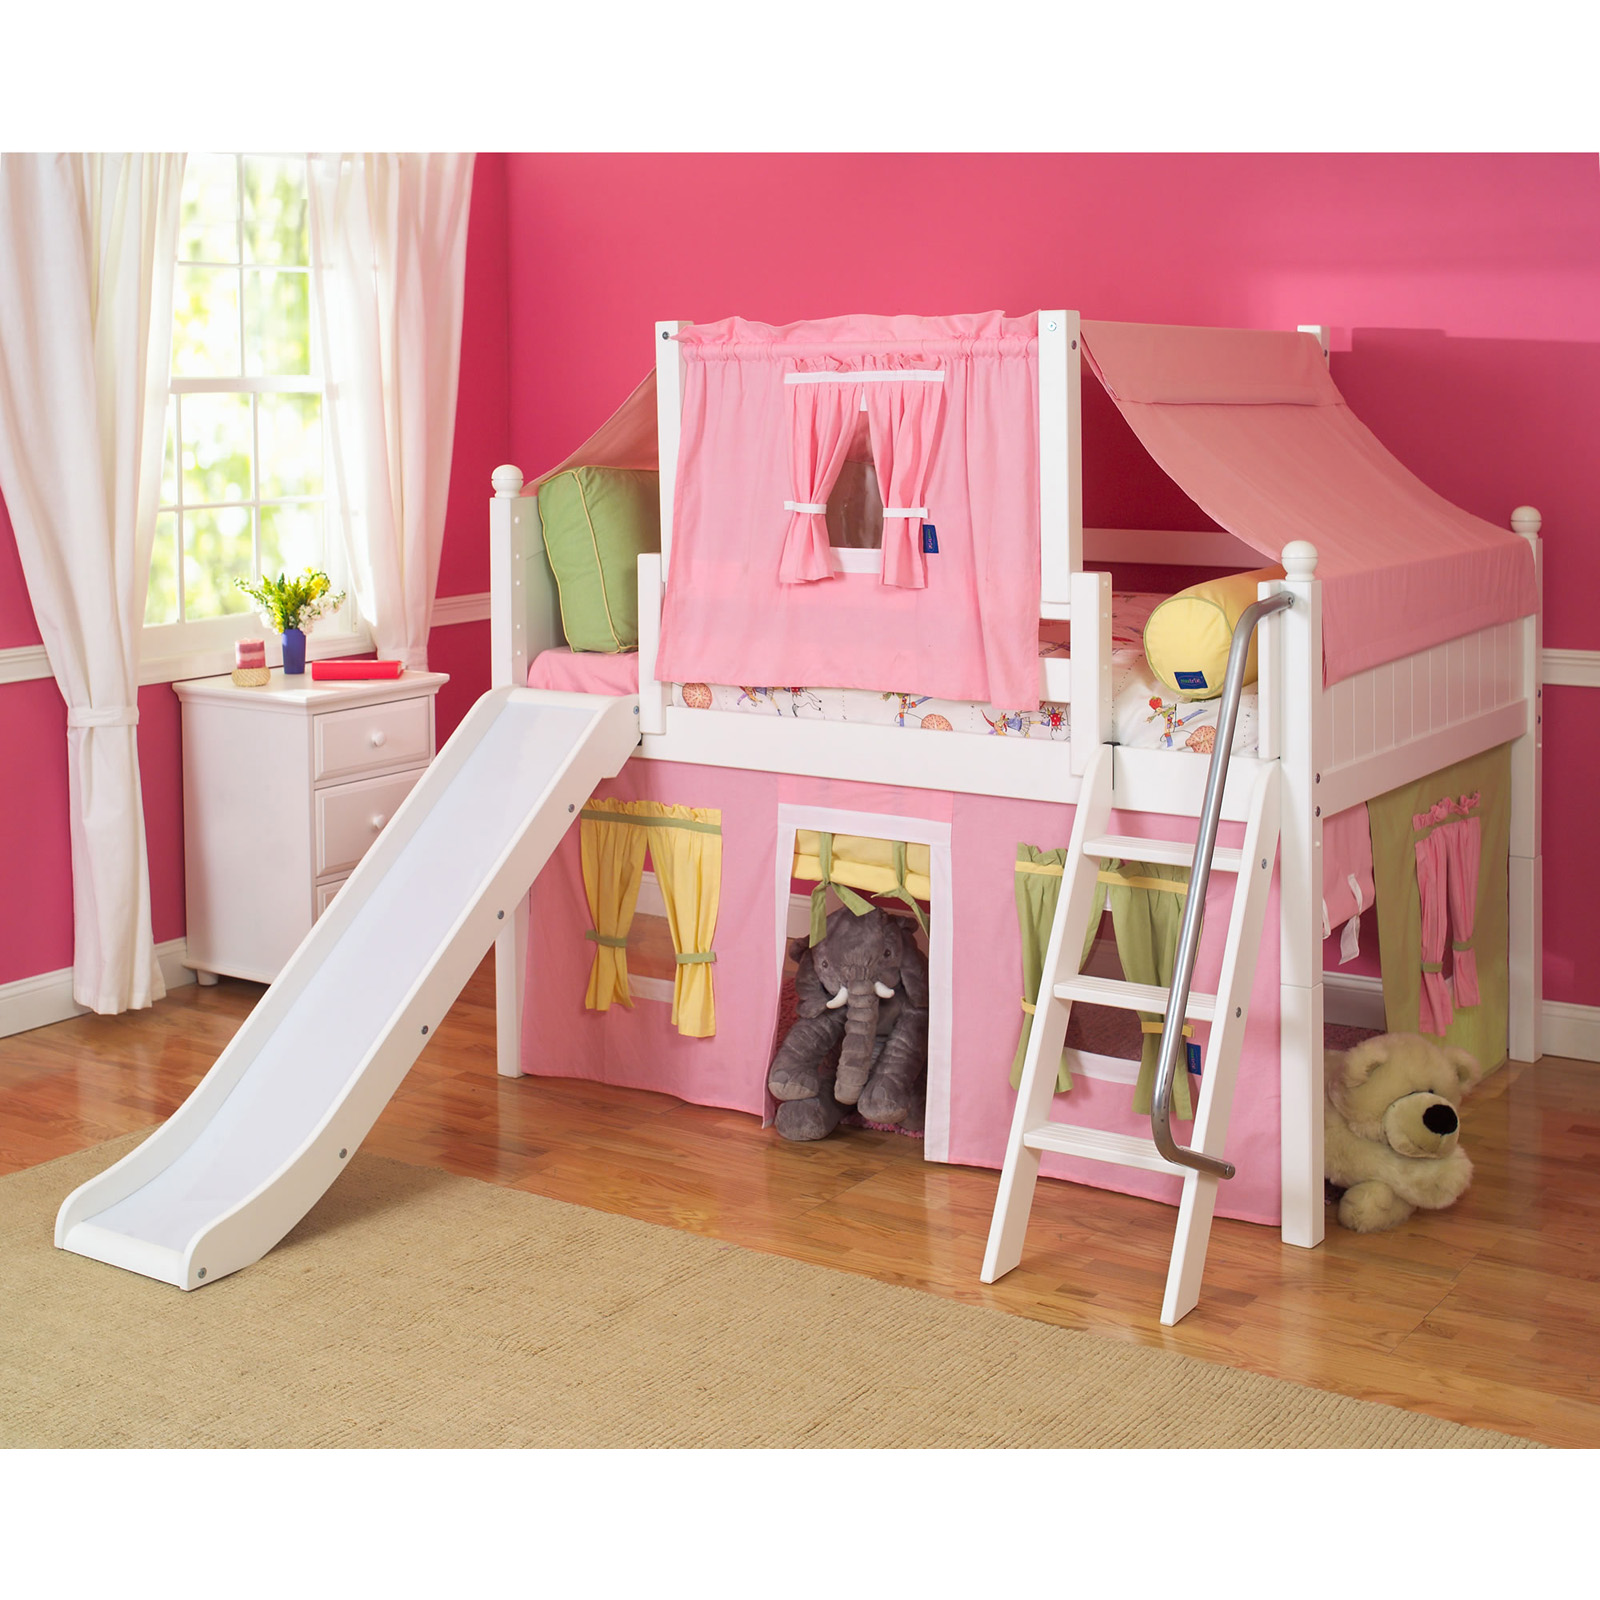 Double deck bedroom for kids girls - Double Deck Bedroom For Kids Girls 31